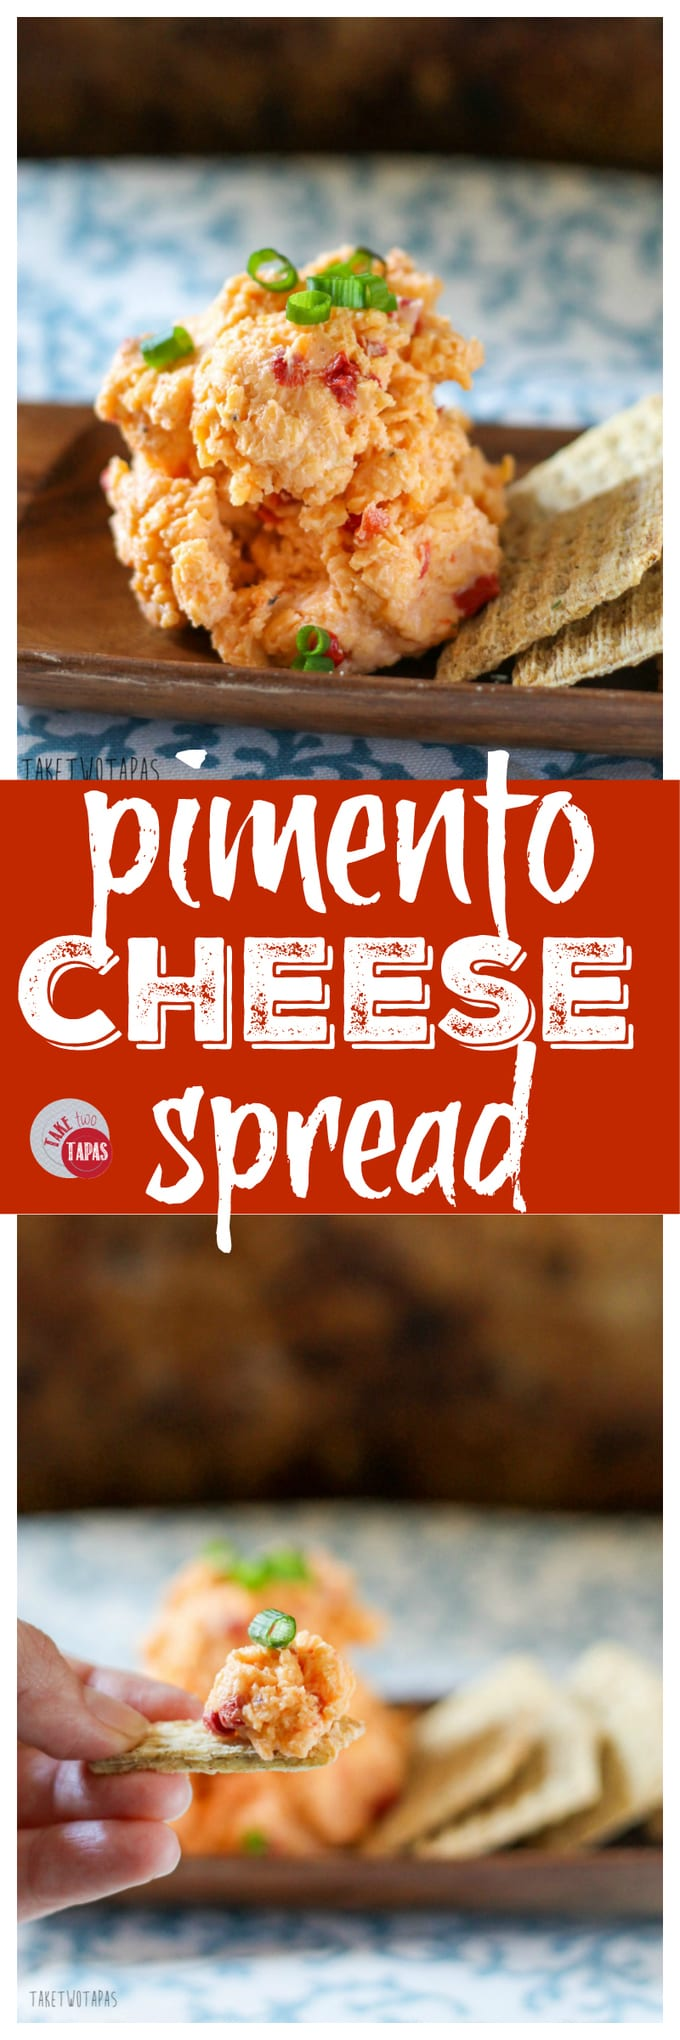 Delicious Homemade Pimento Cheese Spread | Take Two Tapas | #pimentocheese #pimento #cheese #Spread #MothersDay #Easter #Brunch